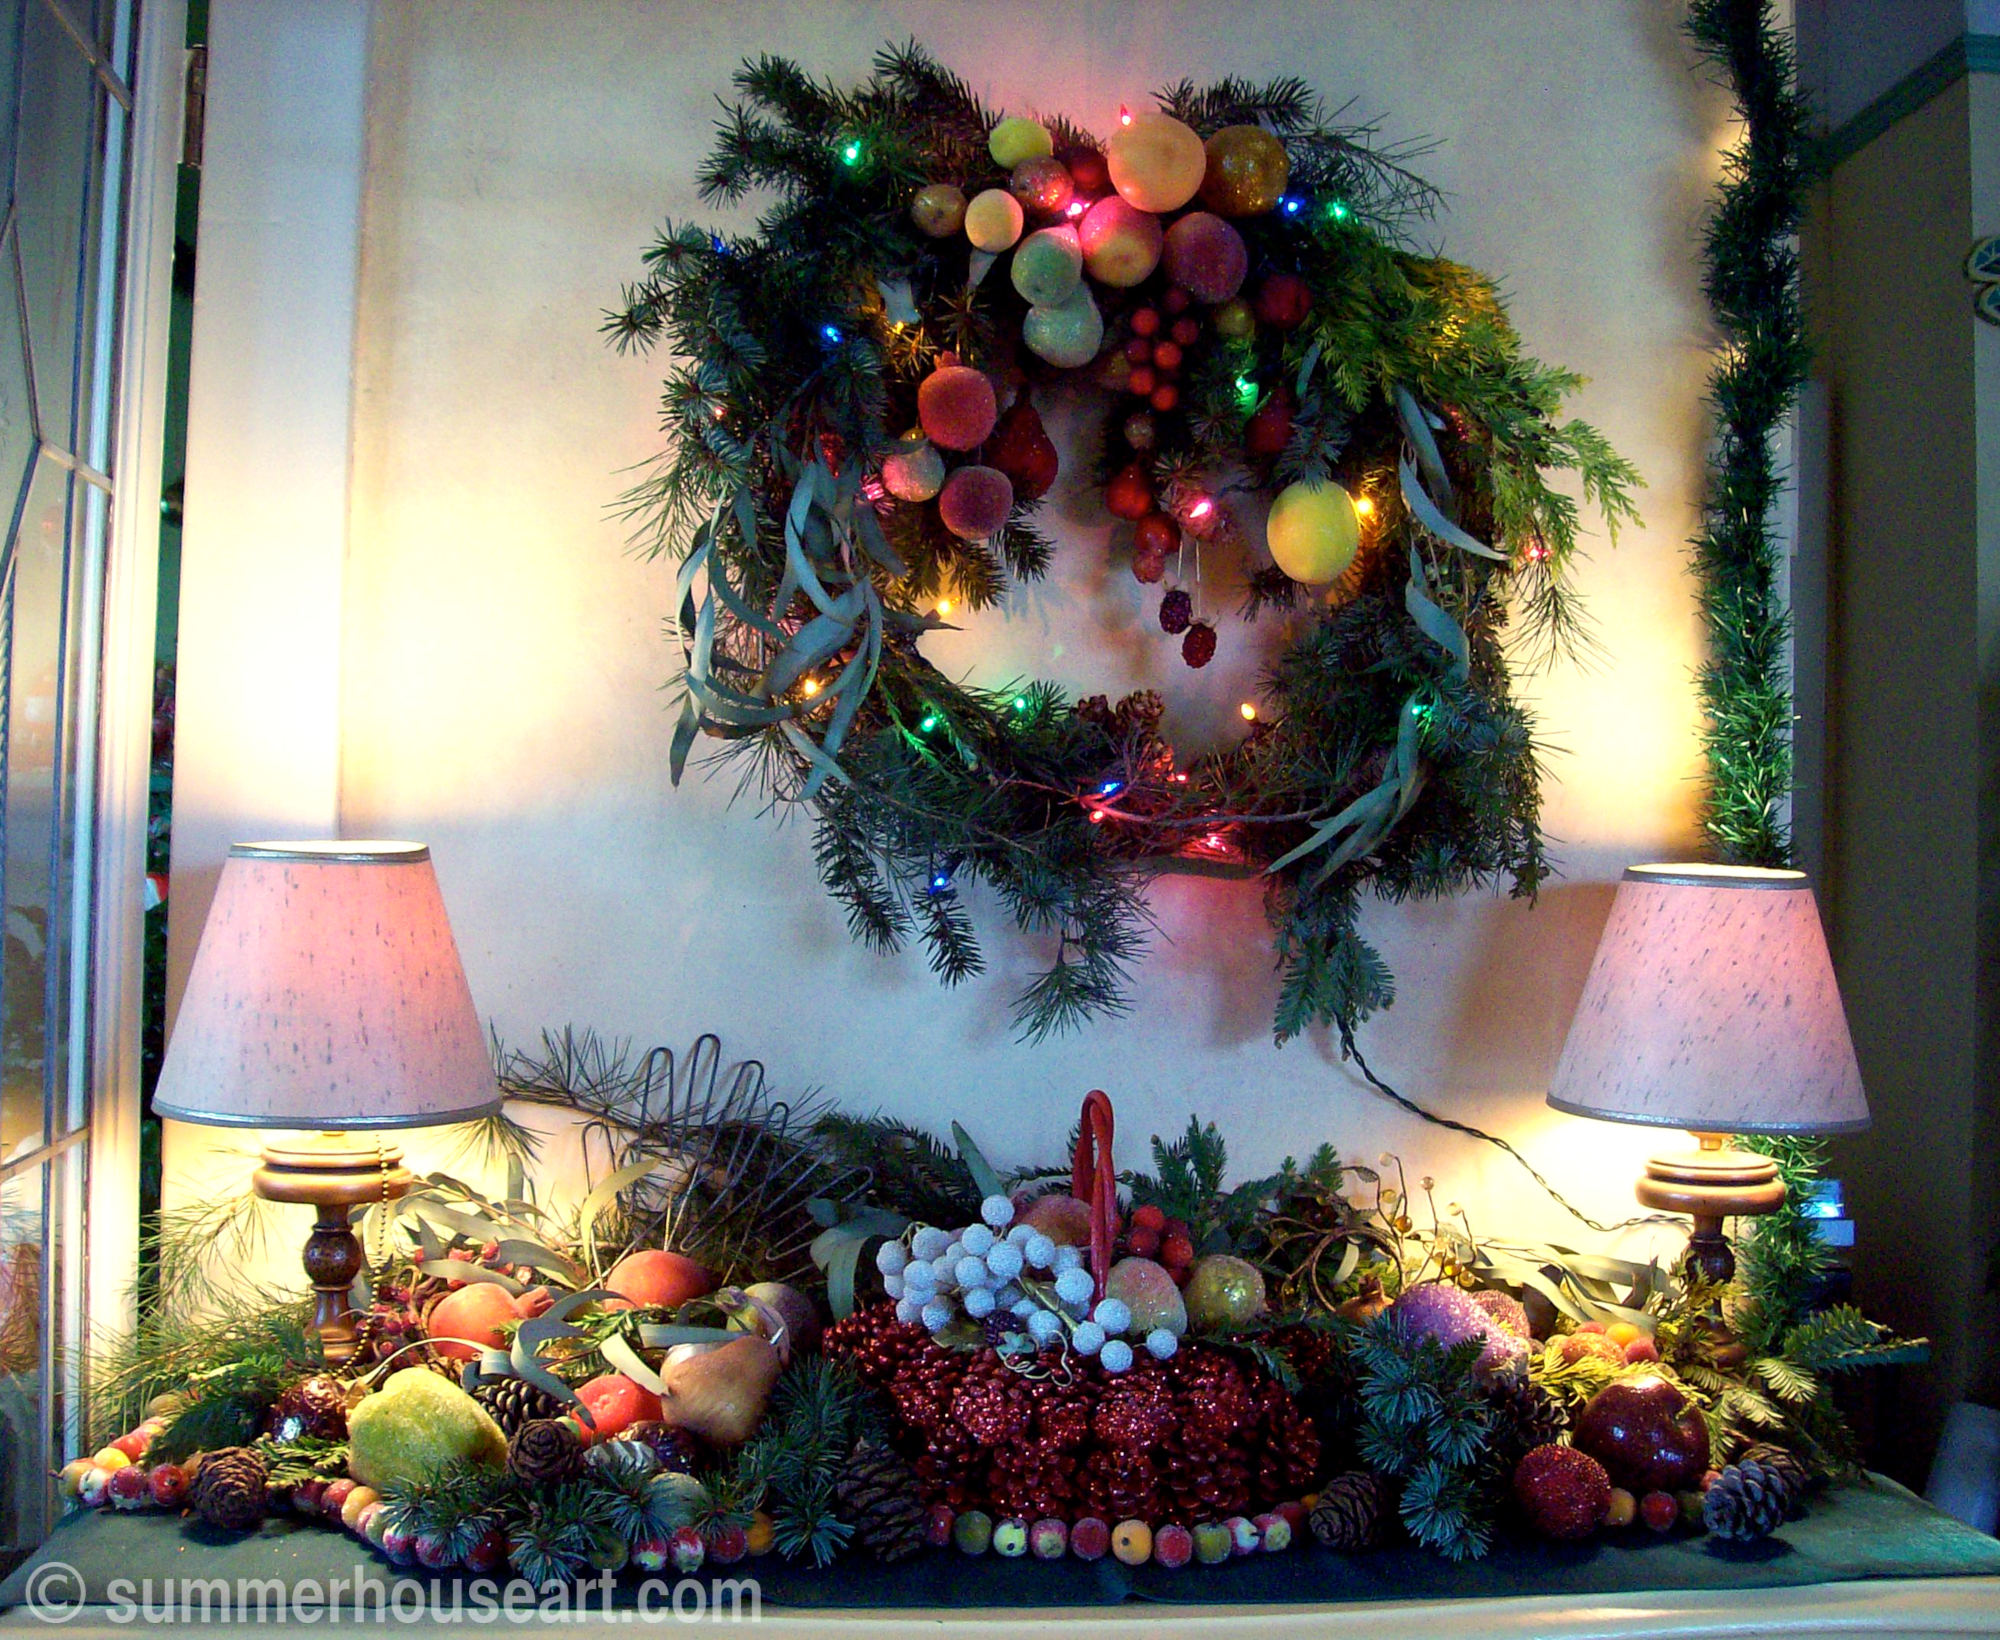 Evergreen Christmas display, summerhouseart.com